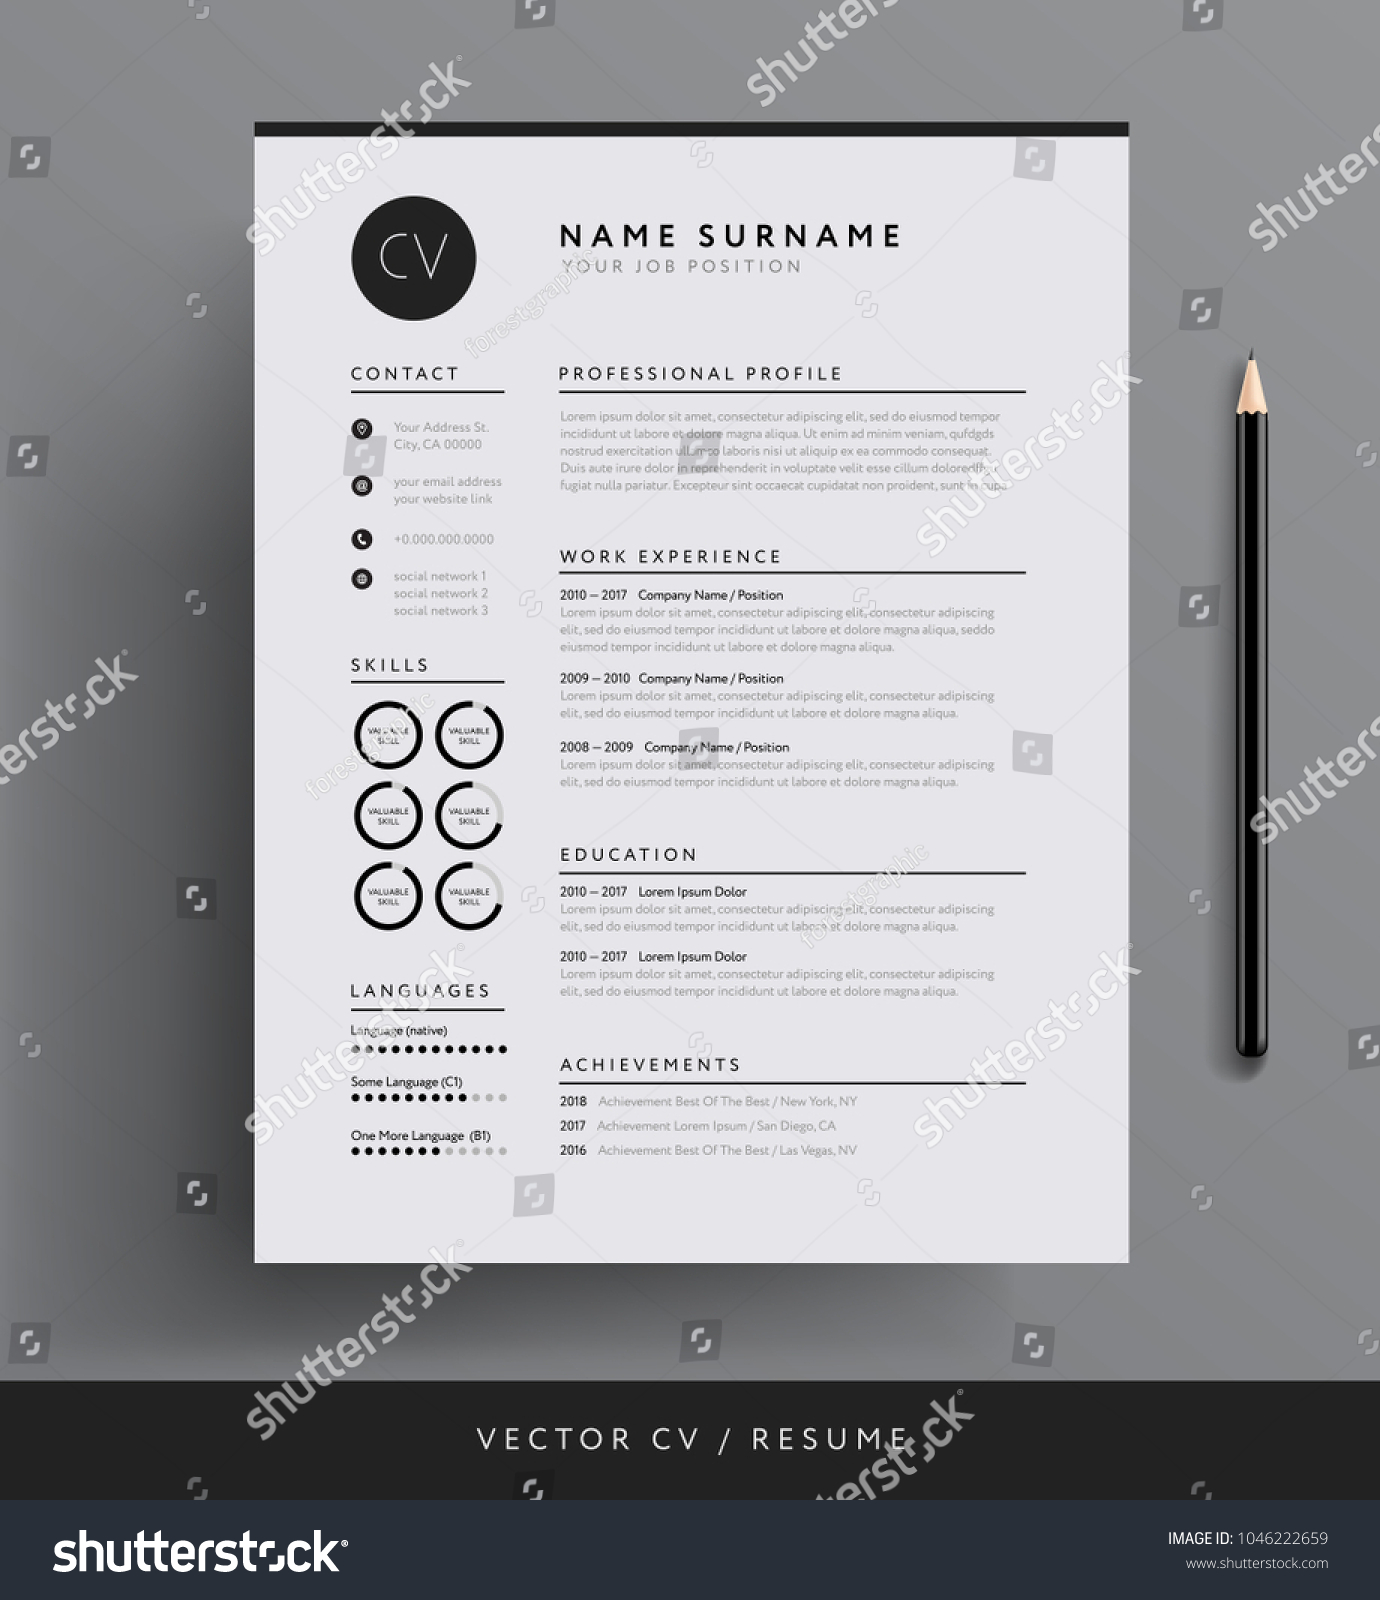 Professional cv resume template design creative professional cv resume template design creative 1046222659 shutterstock yelopaper Images